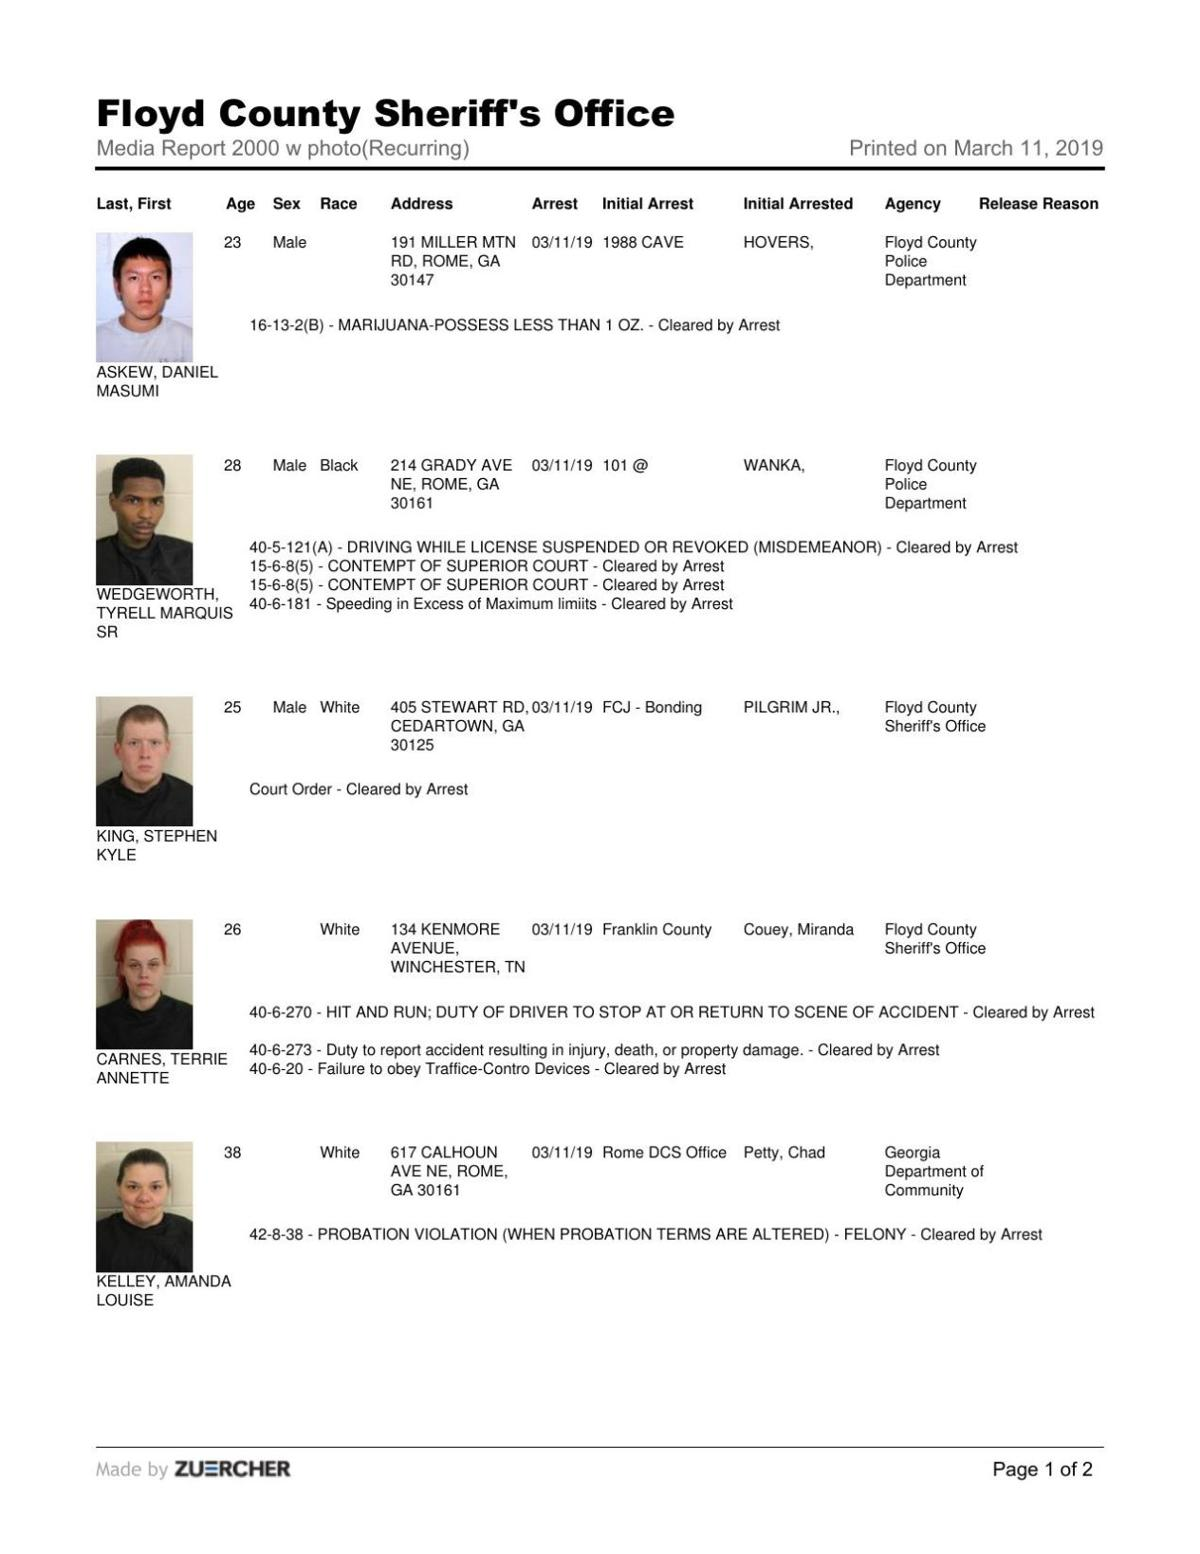 Floyd County Jail arrest reports, Monday, March 11, 8 p.m.